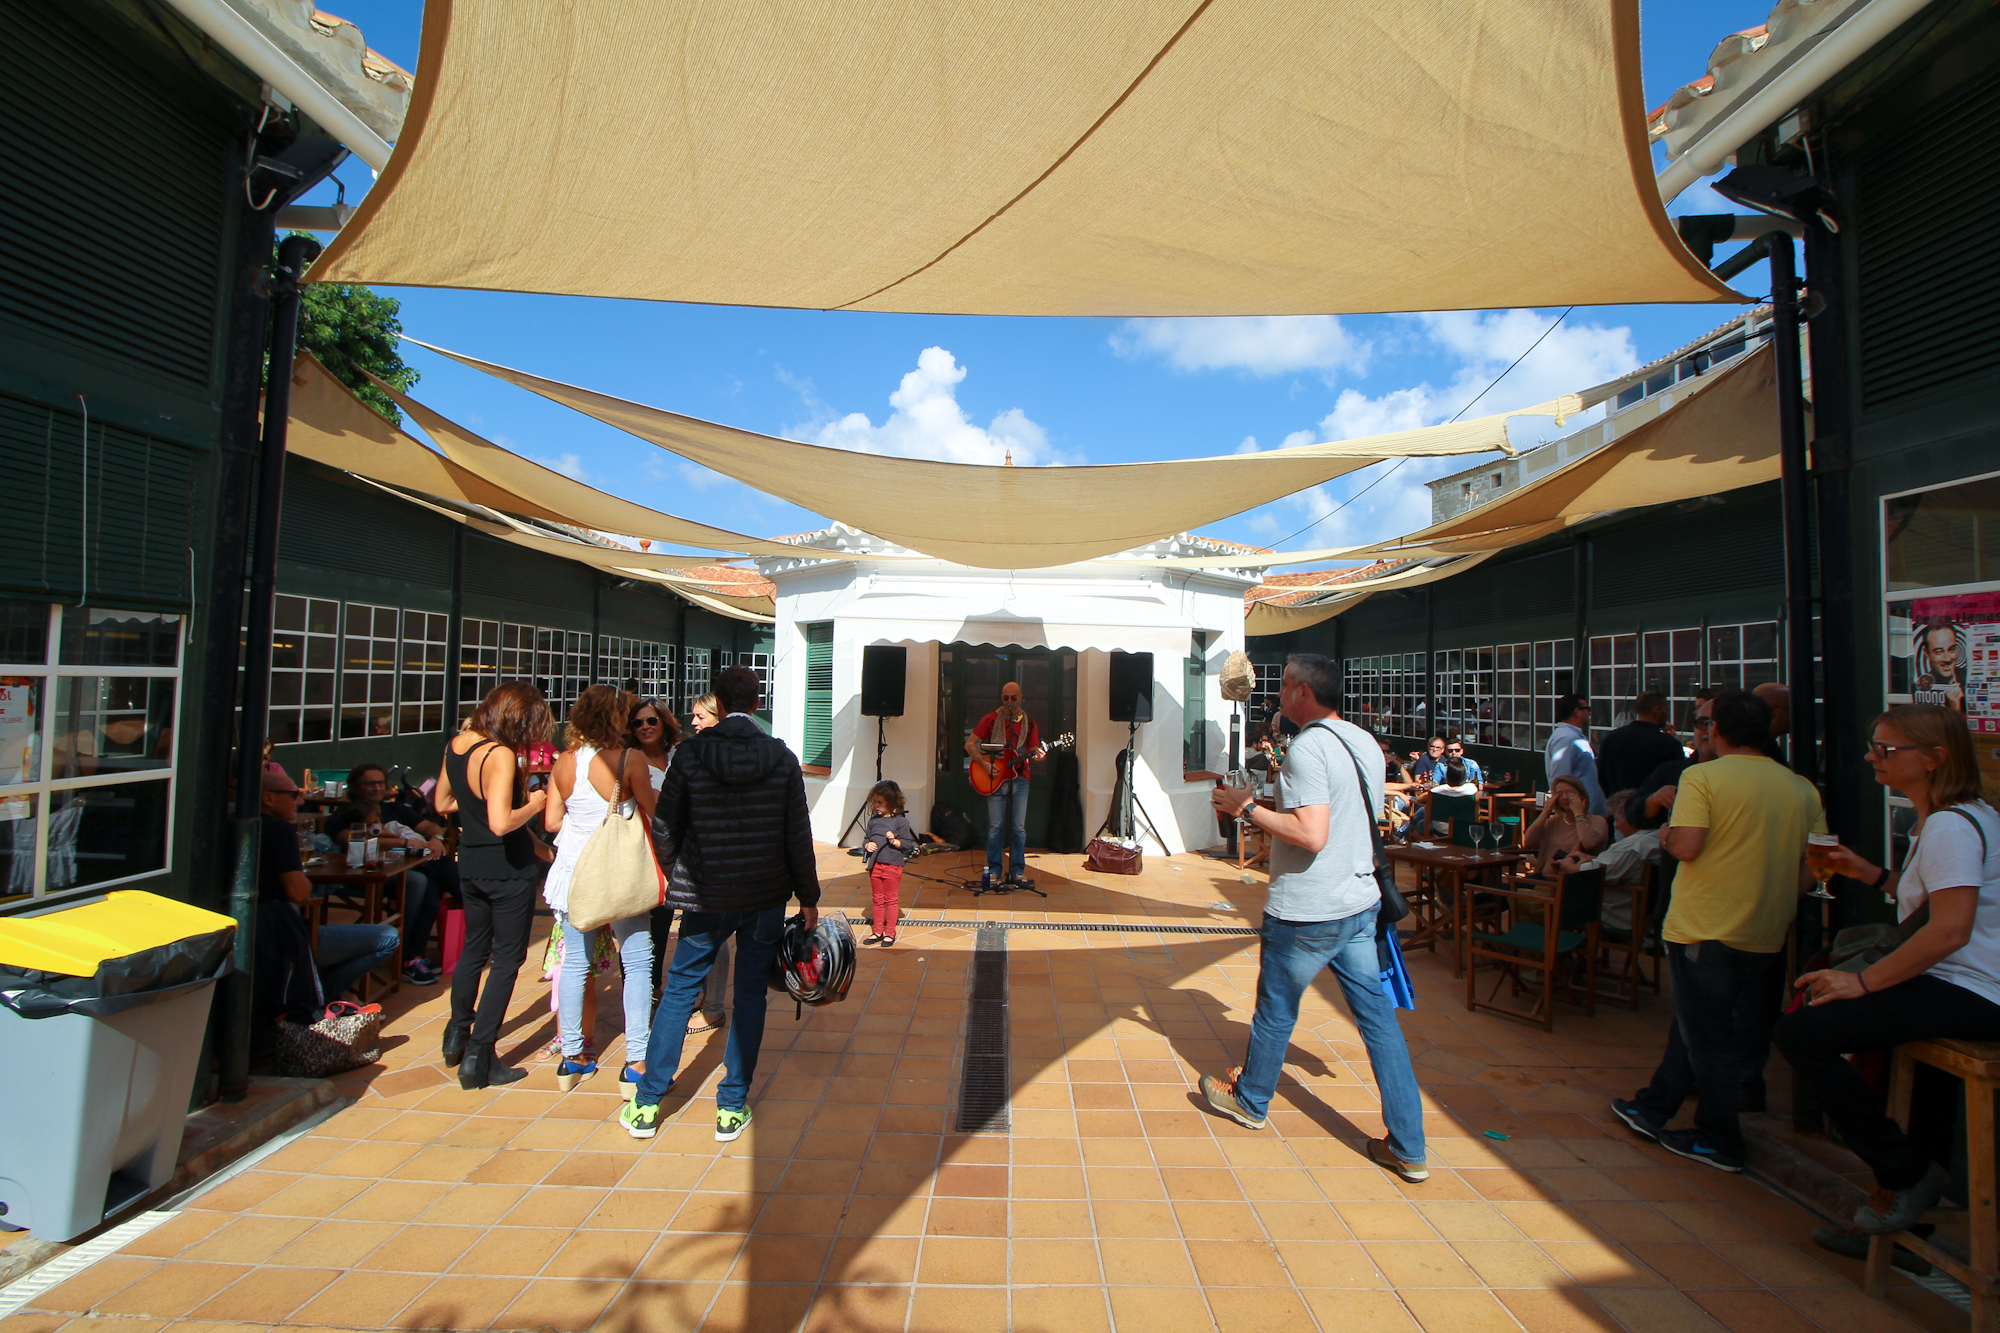 You enter into a large open area (atrium?). As you can see there's a man with a guitar, tables all around the side with merry people, and you can enter the surrounding building on either side to grab tapas and drinks.